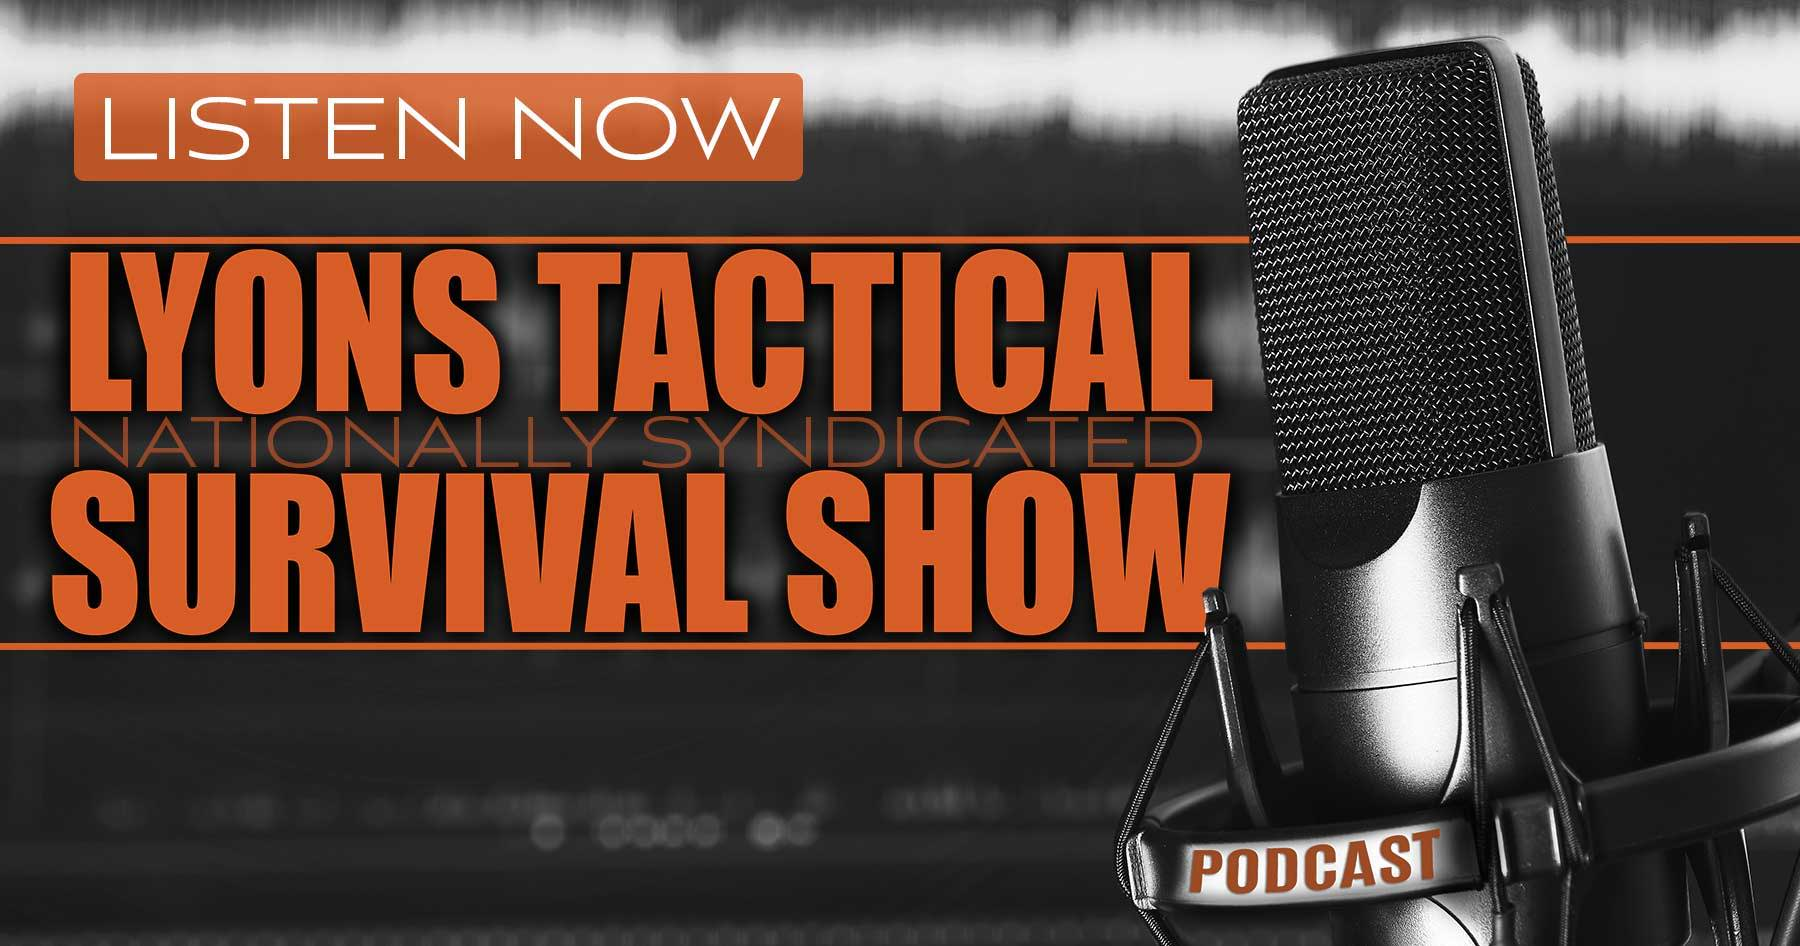 LYONS TACTICAL PODCAST LINK PAGE